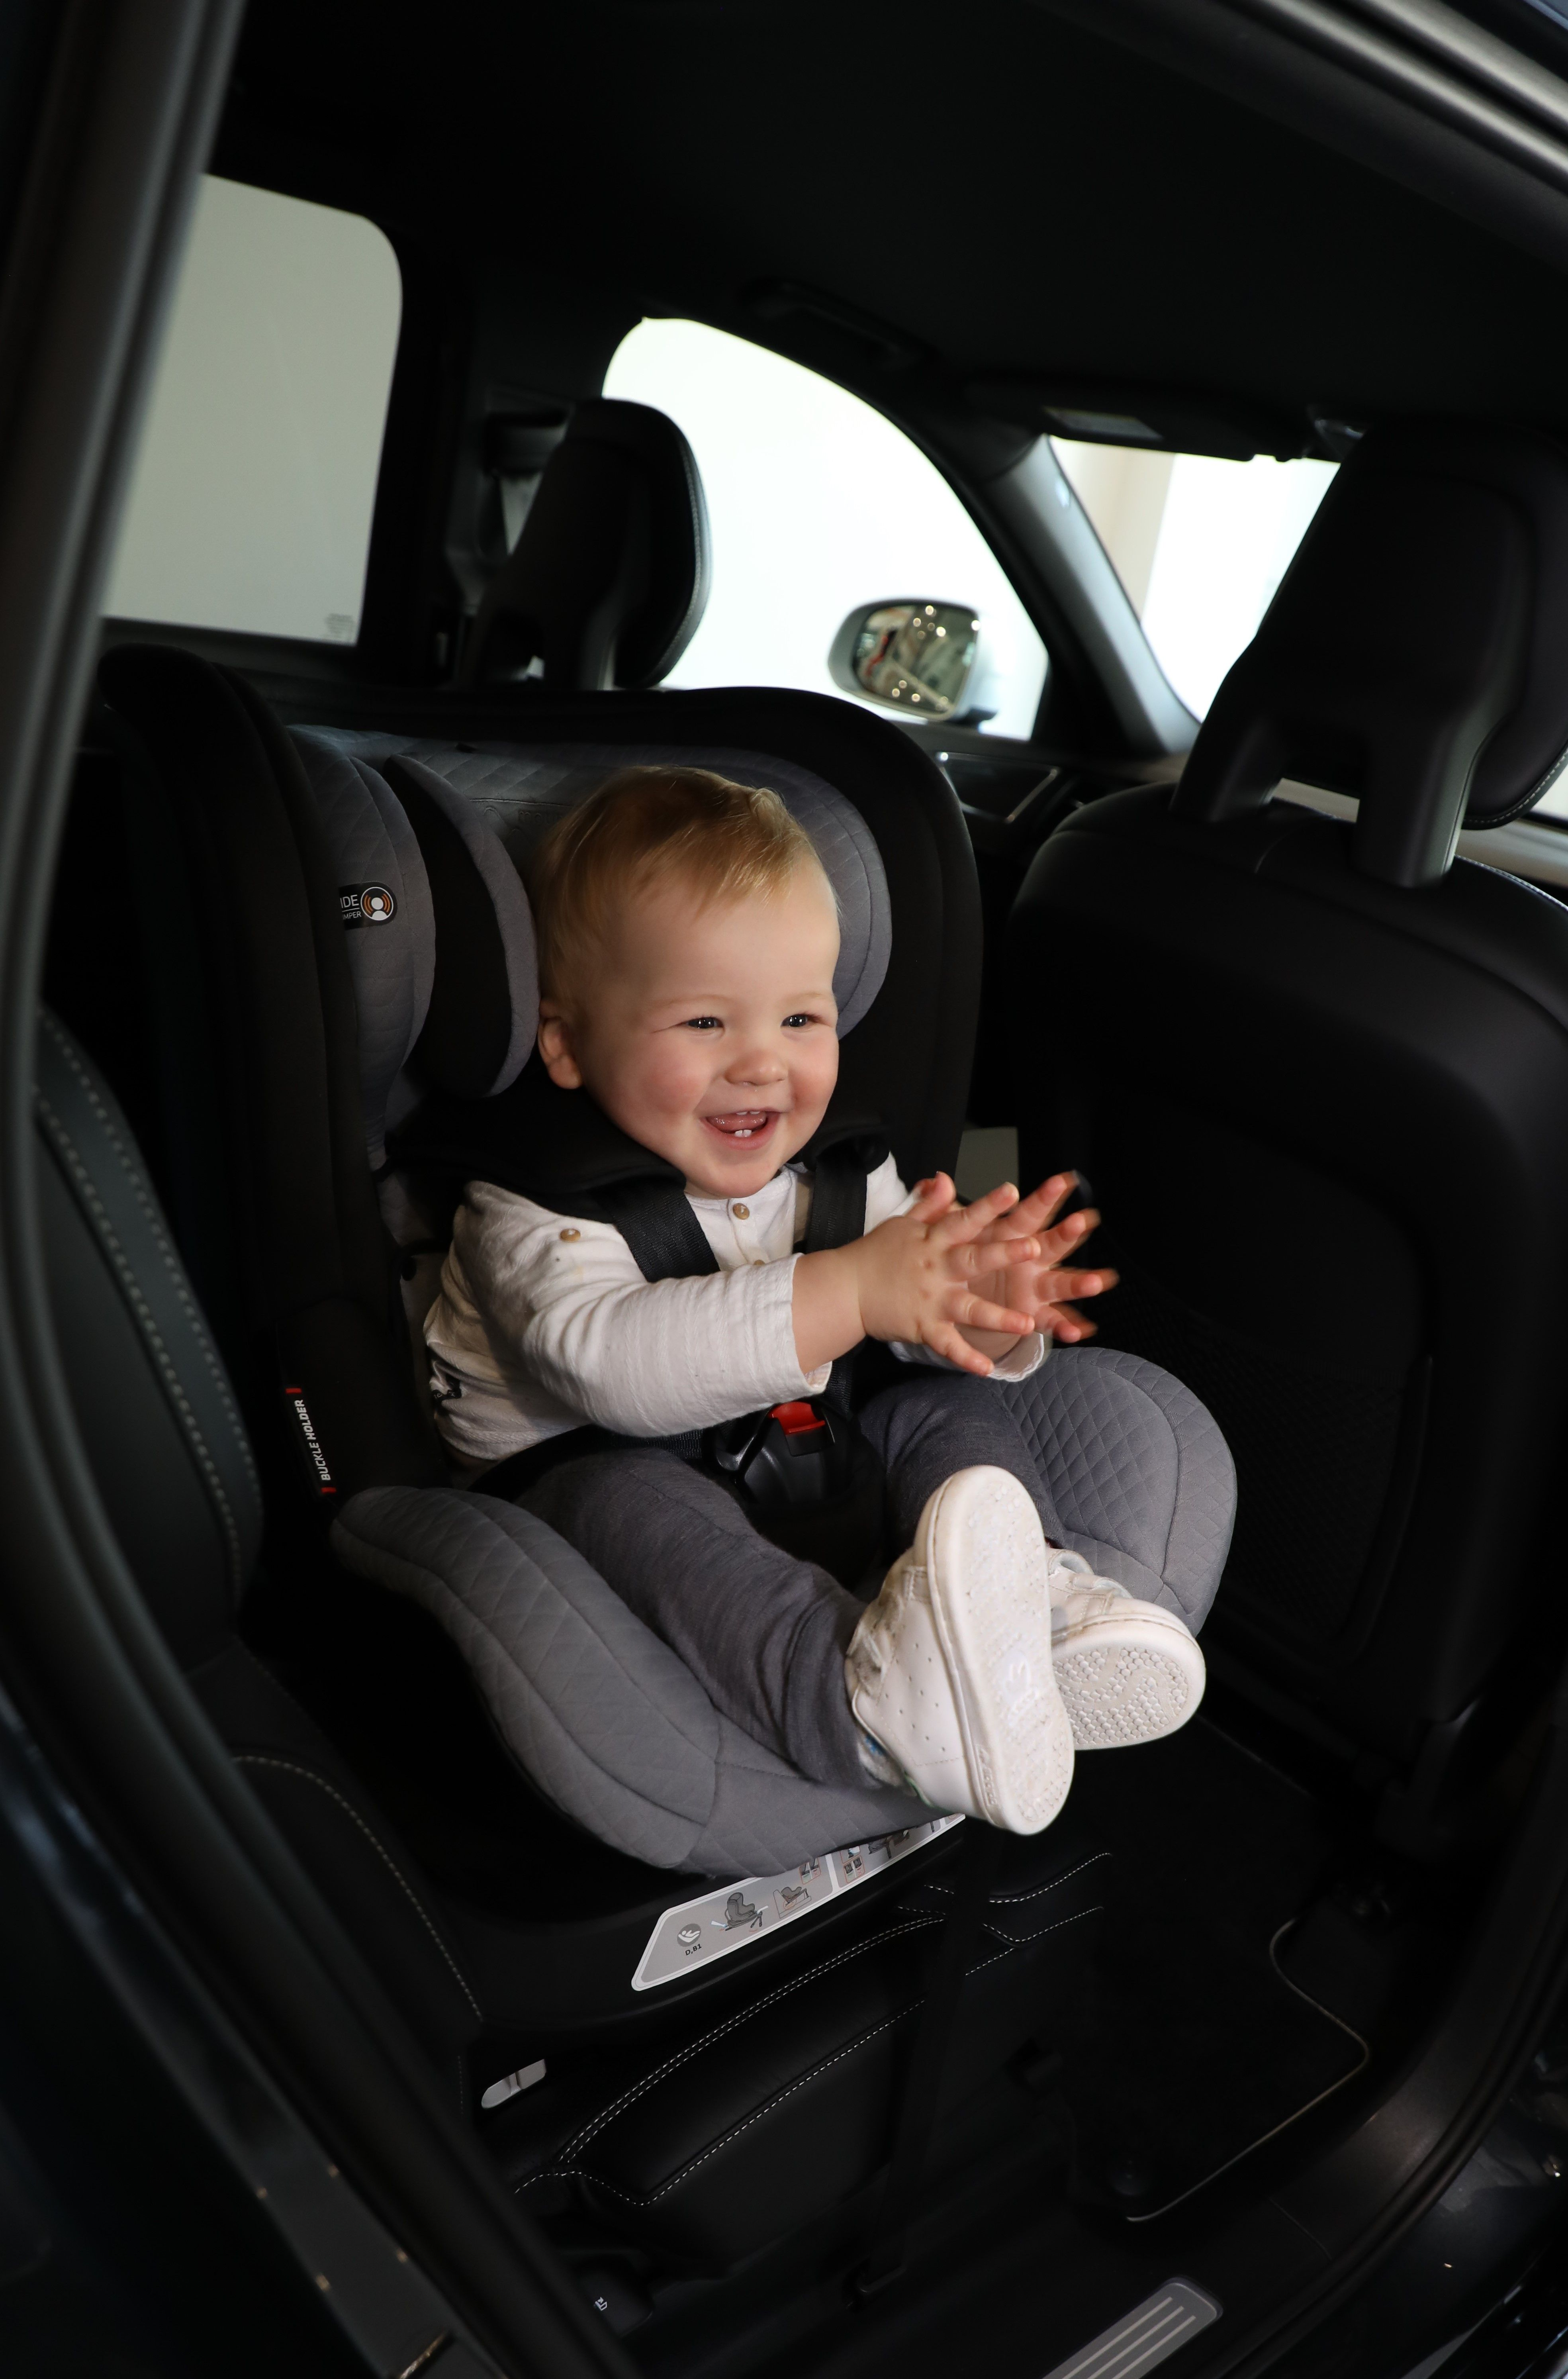 Mountain Buggy Safe Rotate Reviews A Convertible Car Seat That Is